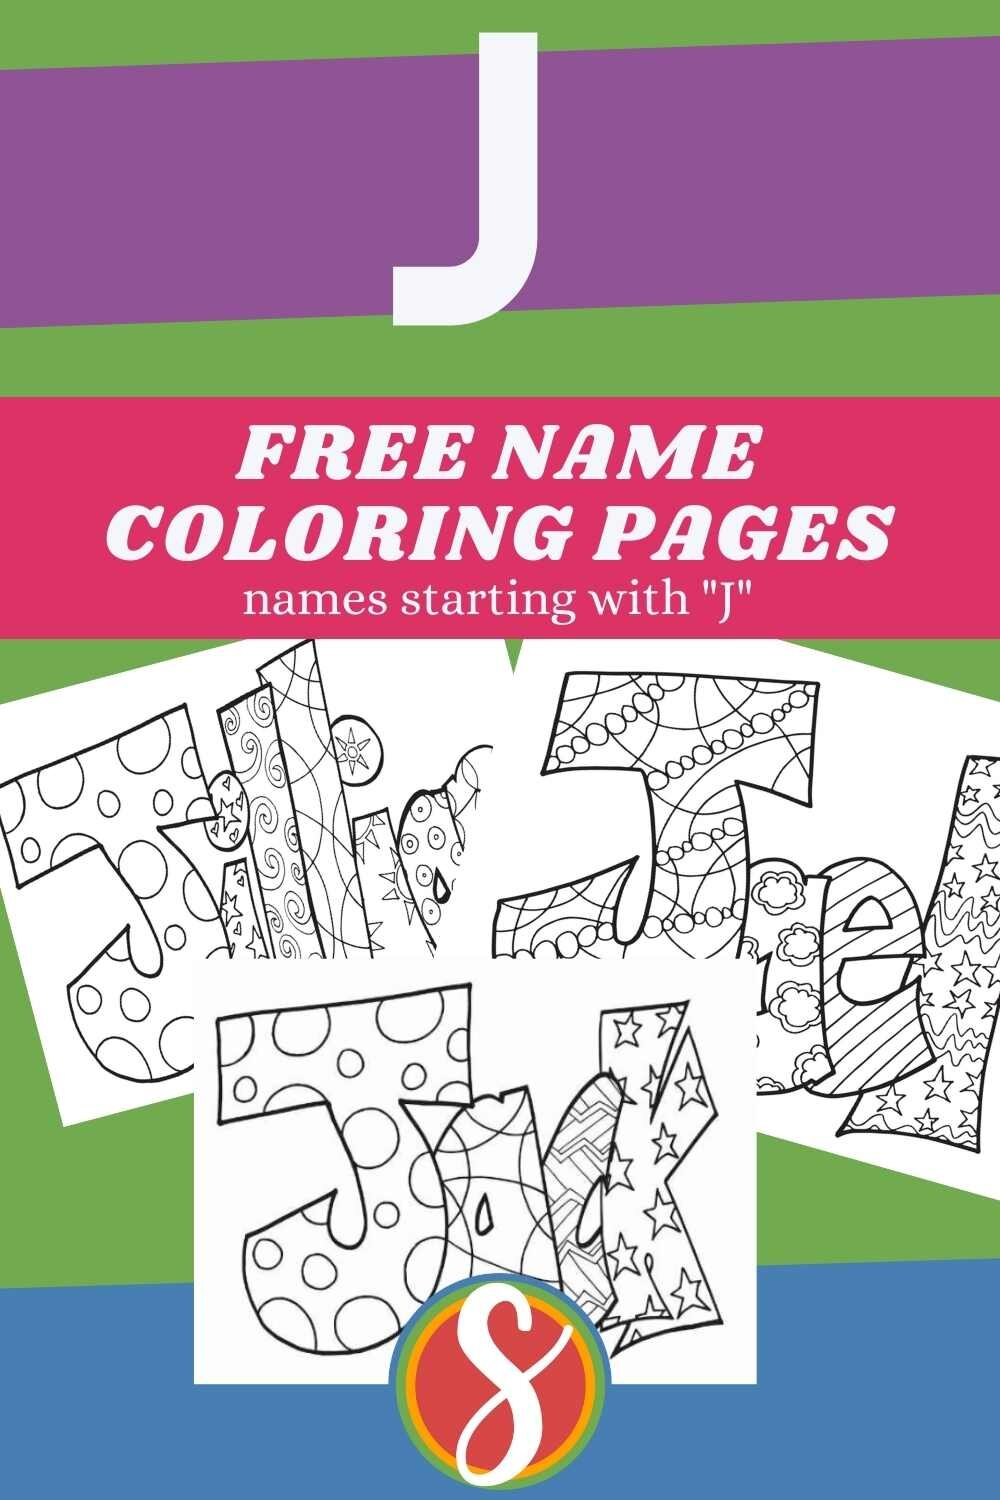 free name coloring page letter j.jpg